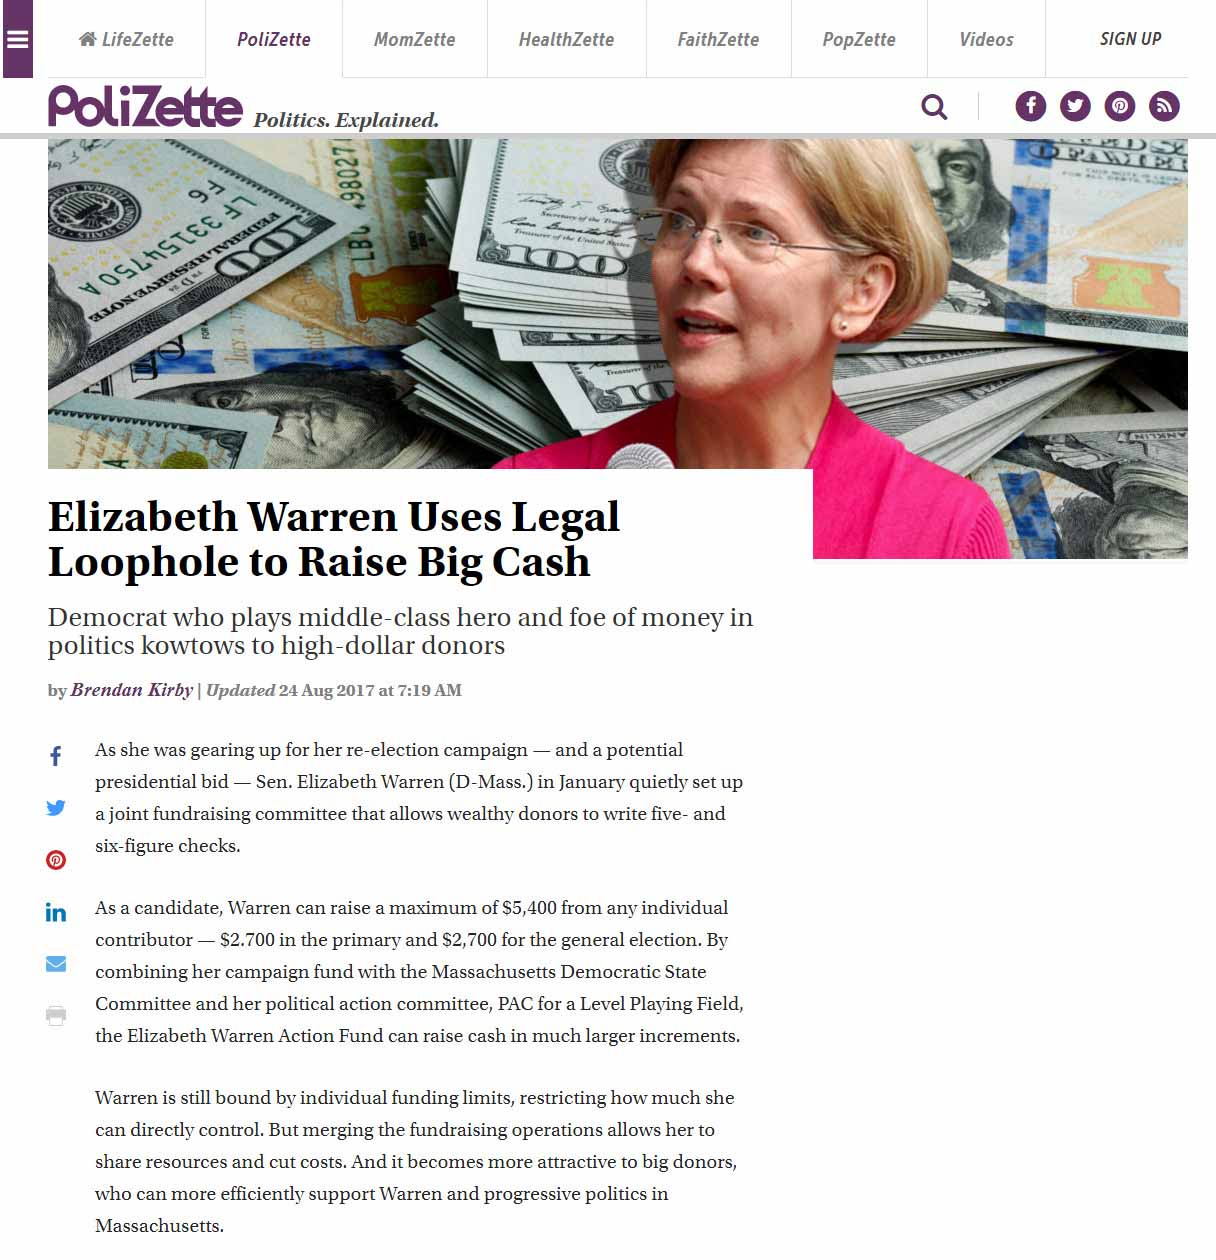 Elizabeth Warren Uses Legal Loophole To Raise Big Cash